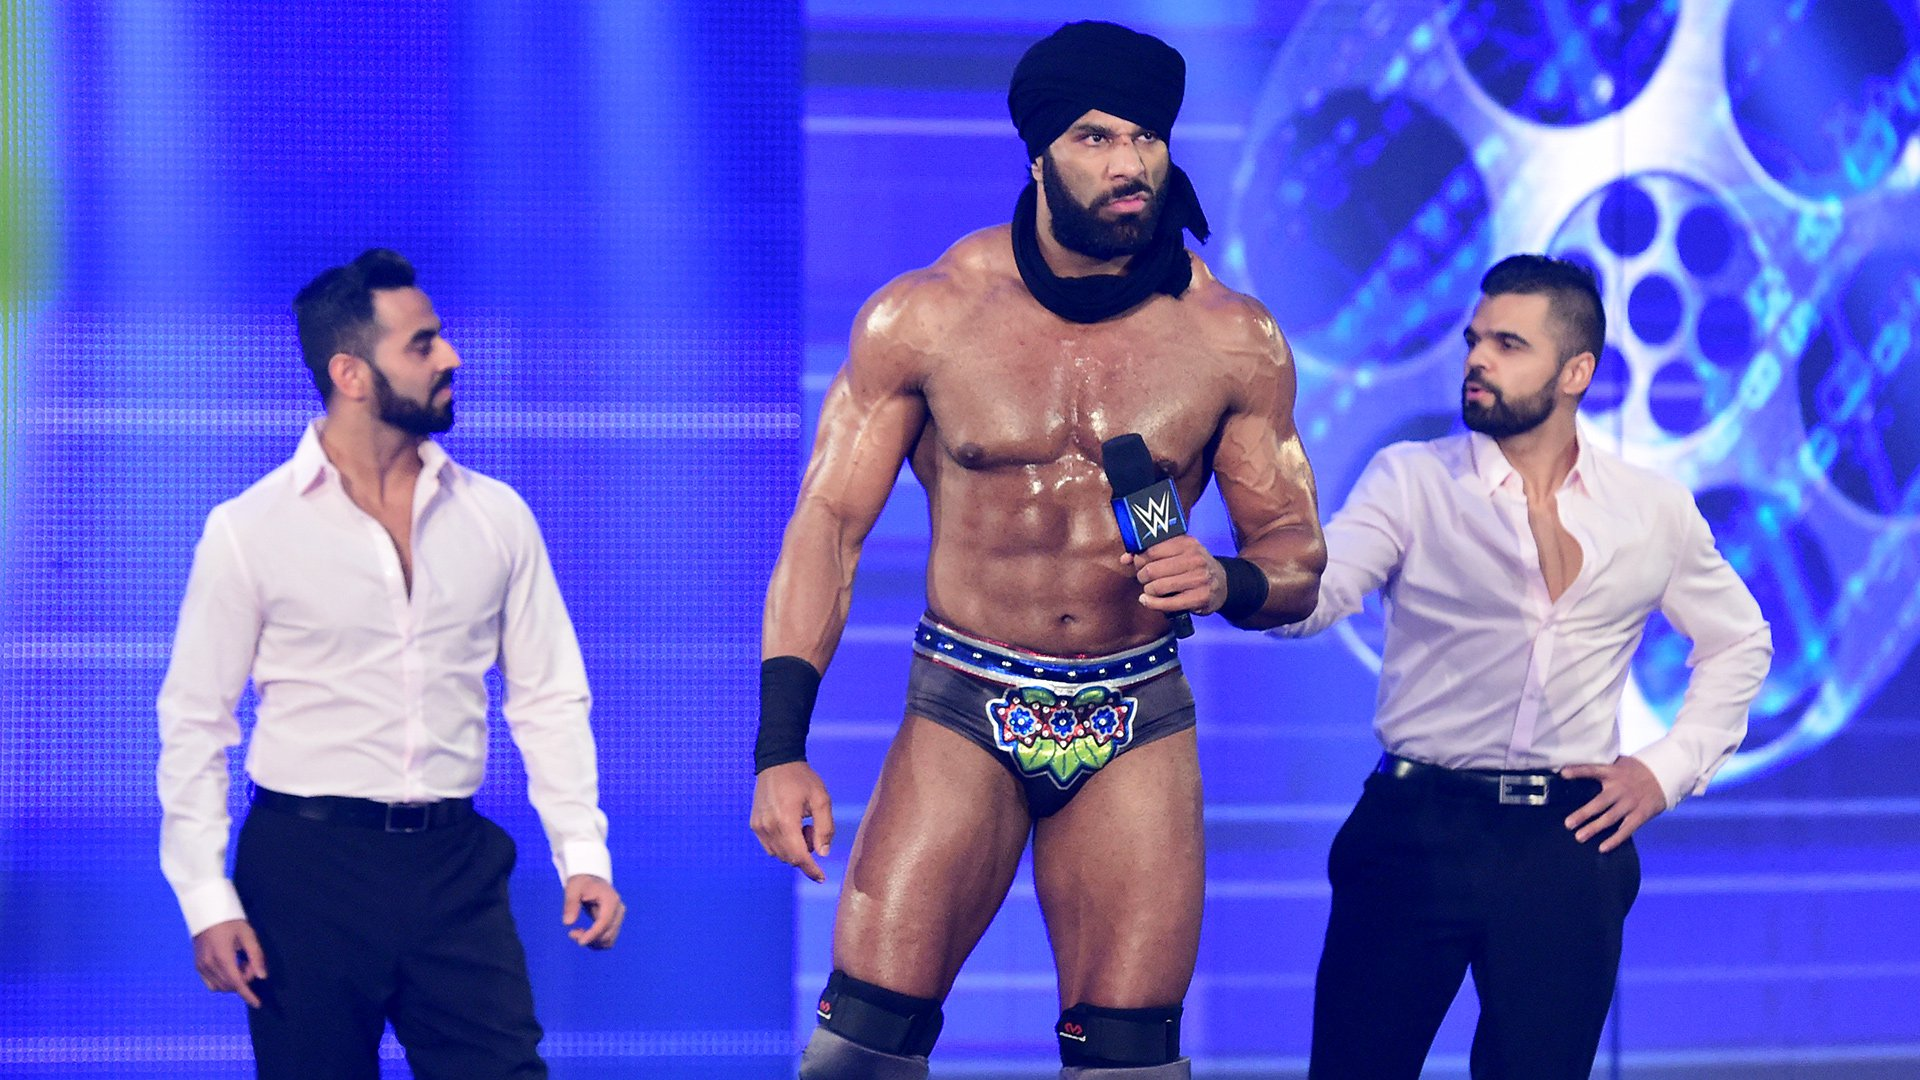 Flanked by The Singh Brothers, The Maharaja promises to defeat Styles tonight and beat Randy Orton for the WWE Championship at WWE Backlash this Sunday.